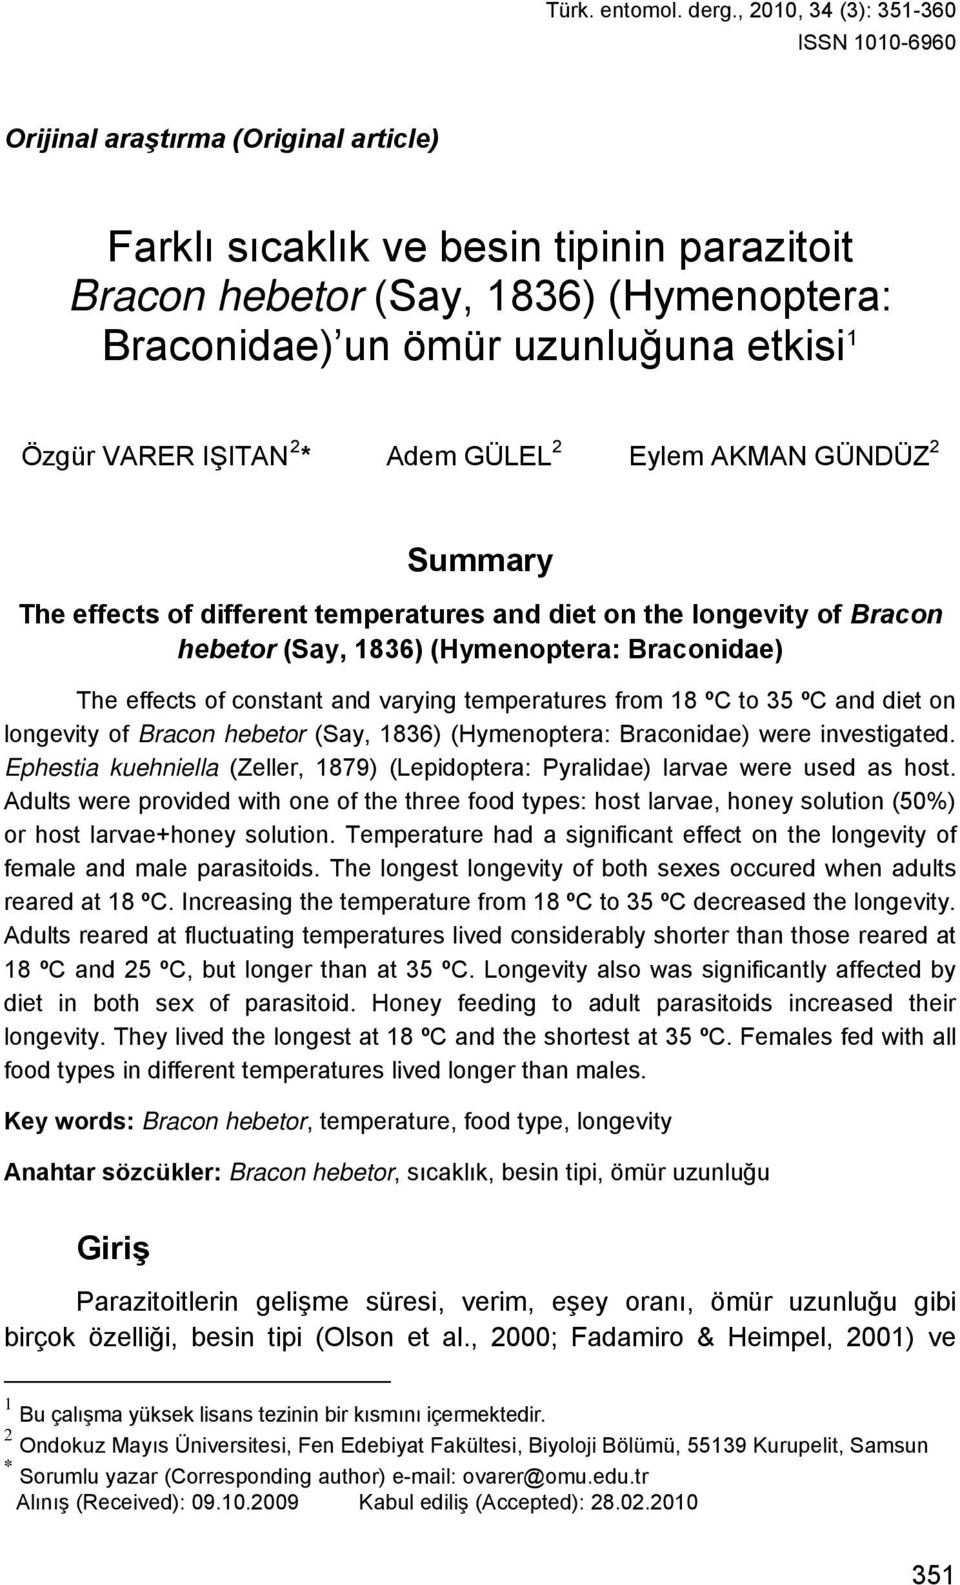 IŞITAN 2 * Adem GÜLEL 2 Eylem AKMAN GÜNDÜZ 2 Summry The effects of different tempertures nd diet on the longevity of Brcon heetor (Sy, 1836) (Hymenopter: Brconide) The effects of constnt nd vrying